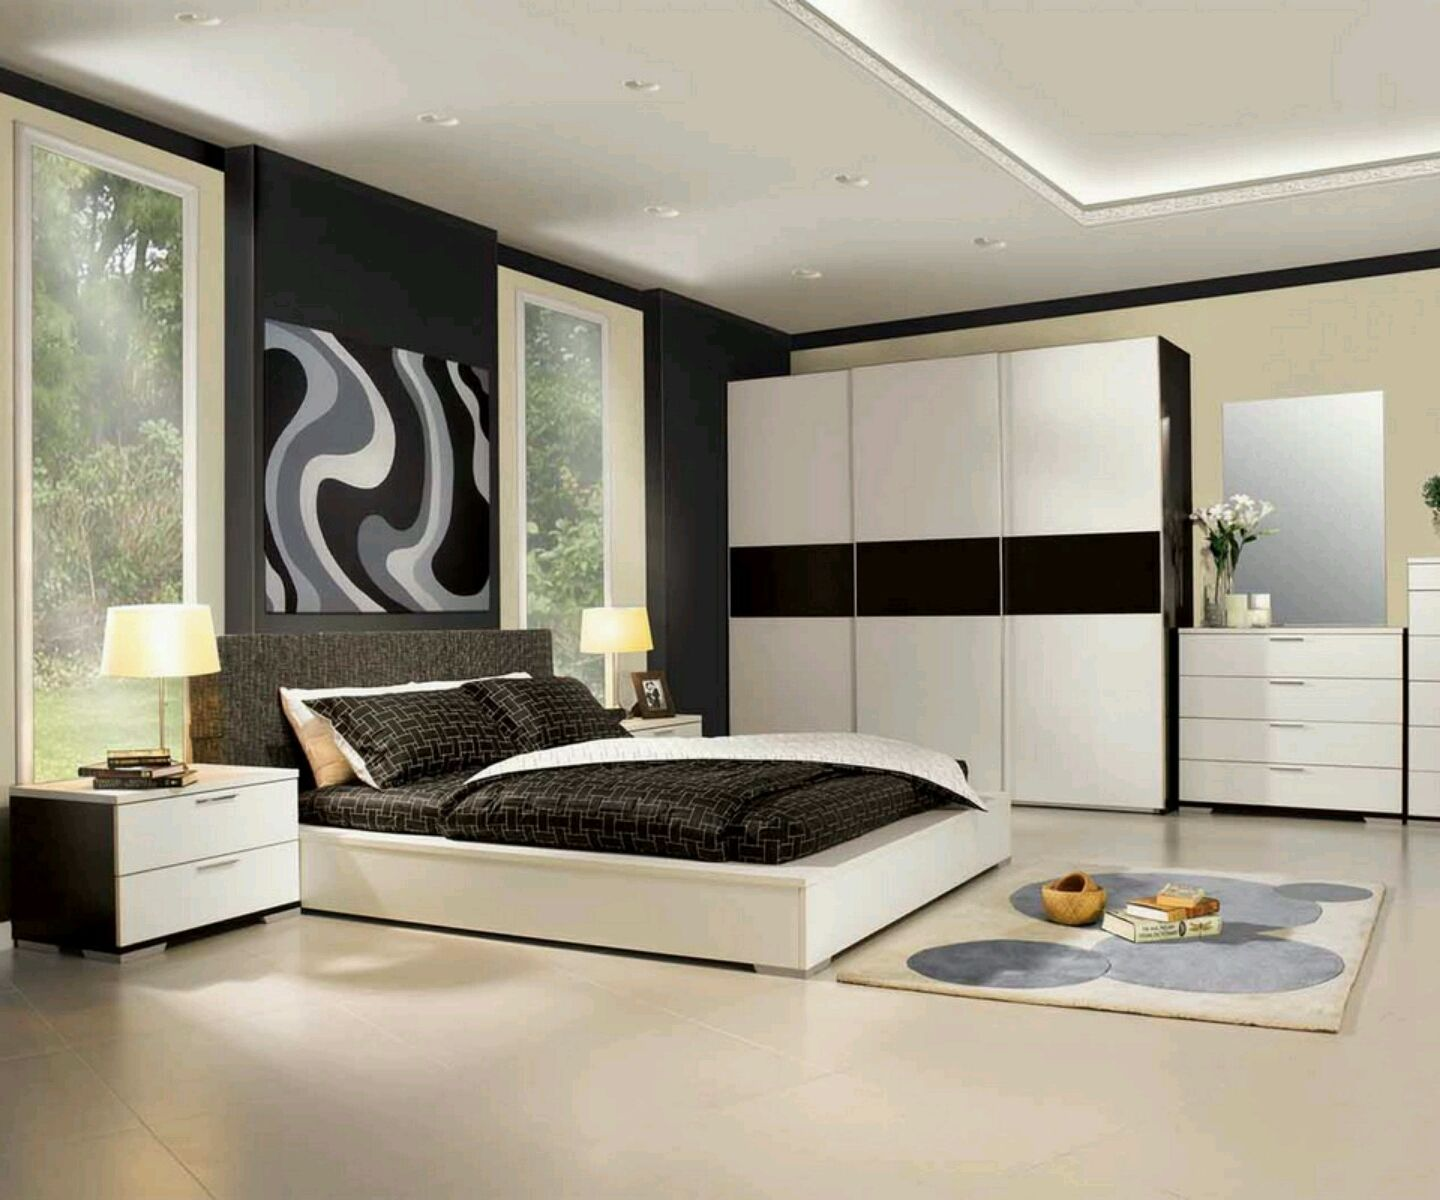 Home Furniture Designs Adorable Modern Bedroom Furniture Design For More Pictures And Design Ideas . Decorating Inspiration